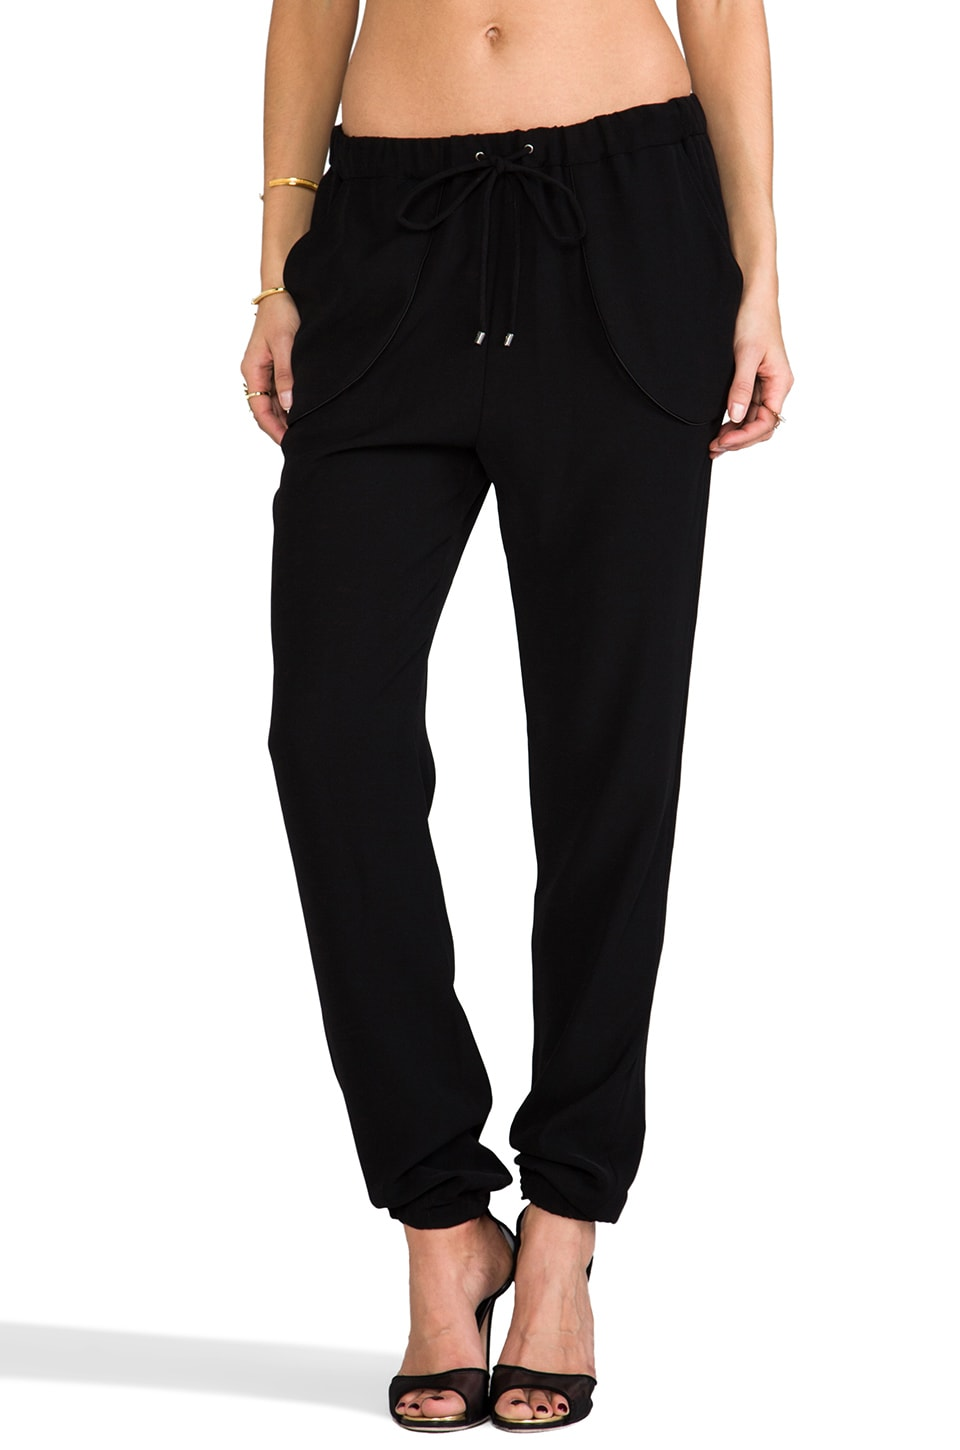 DEREK LAM 10 CROSBY RUNWAY Track Pant in Black